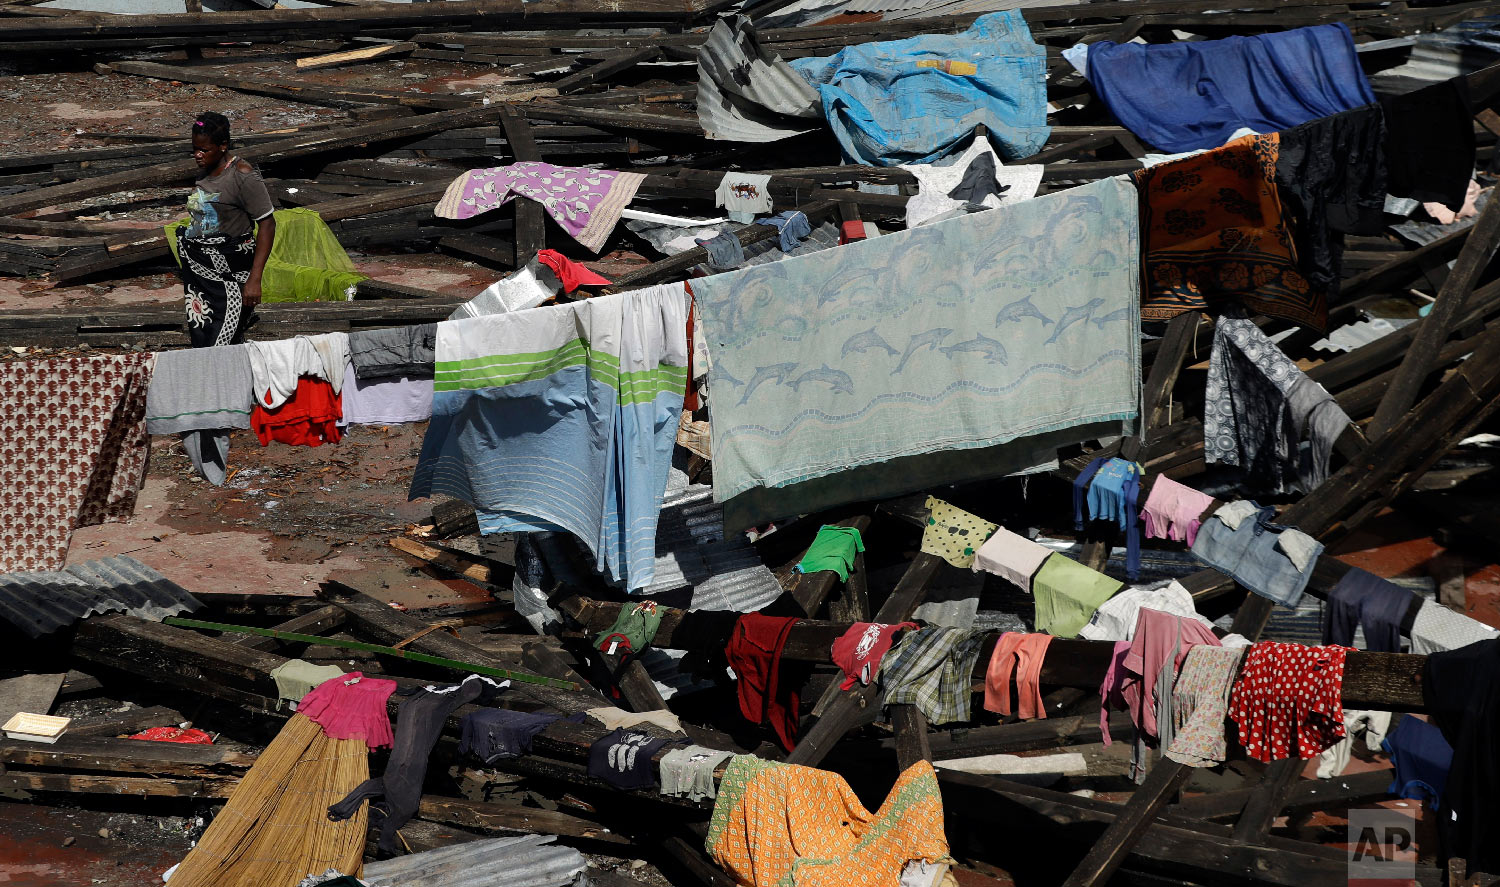 A woman hangs a her wet clothes at a displacement center in Beira, Mozambique, Friday, March 22, 2019. (AP Photo/Themba Hadebe)